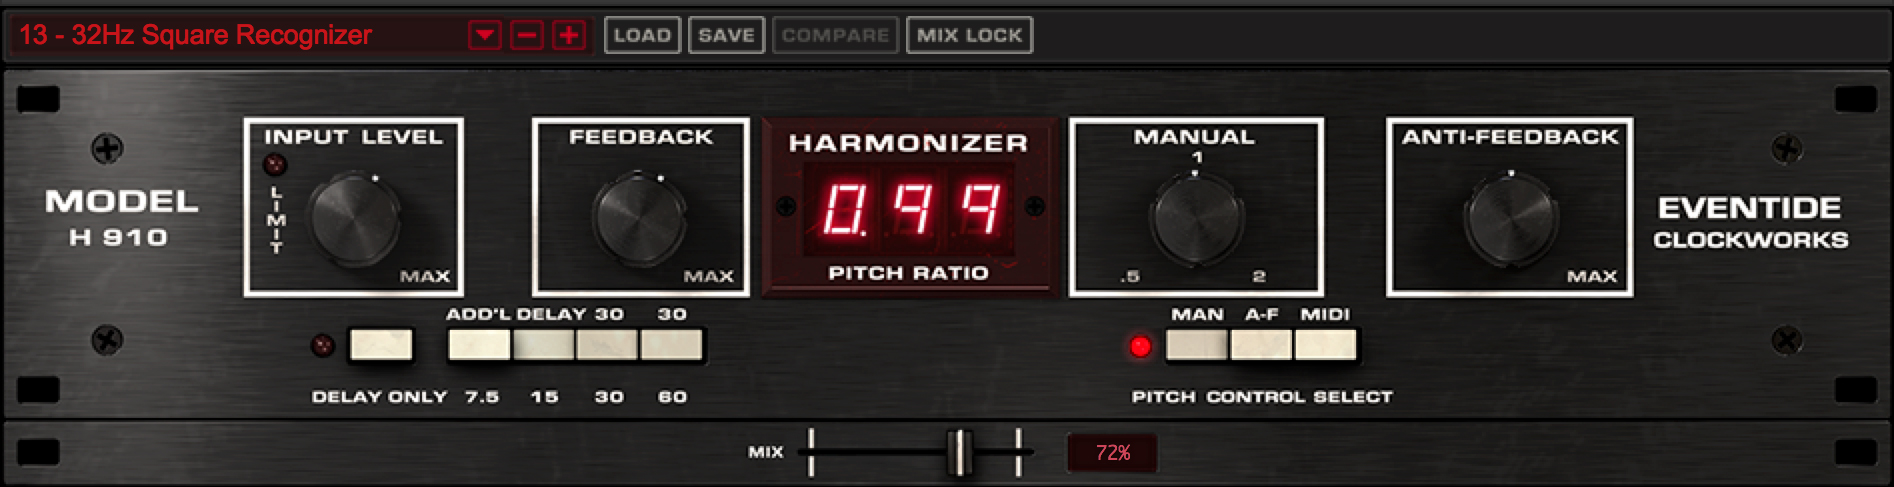 H910 Worlds first Studio FX Effects Harmonizer pluign